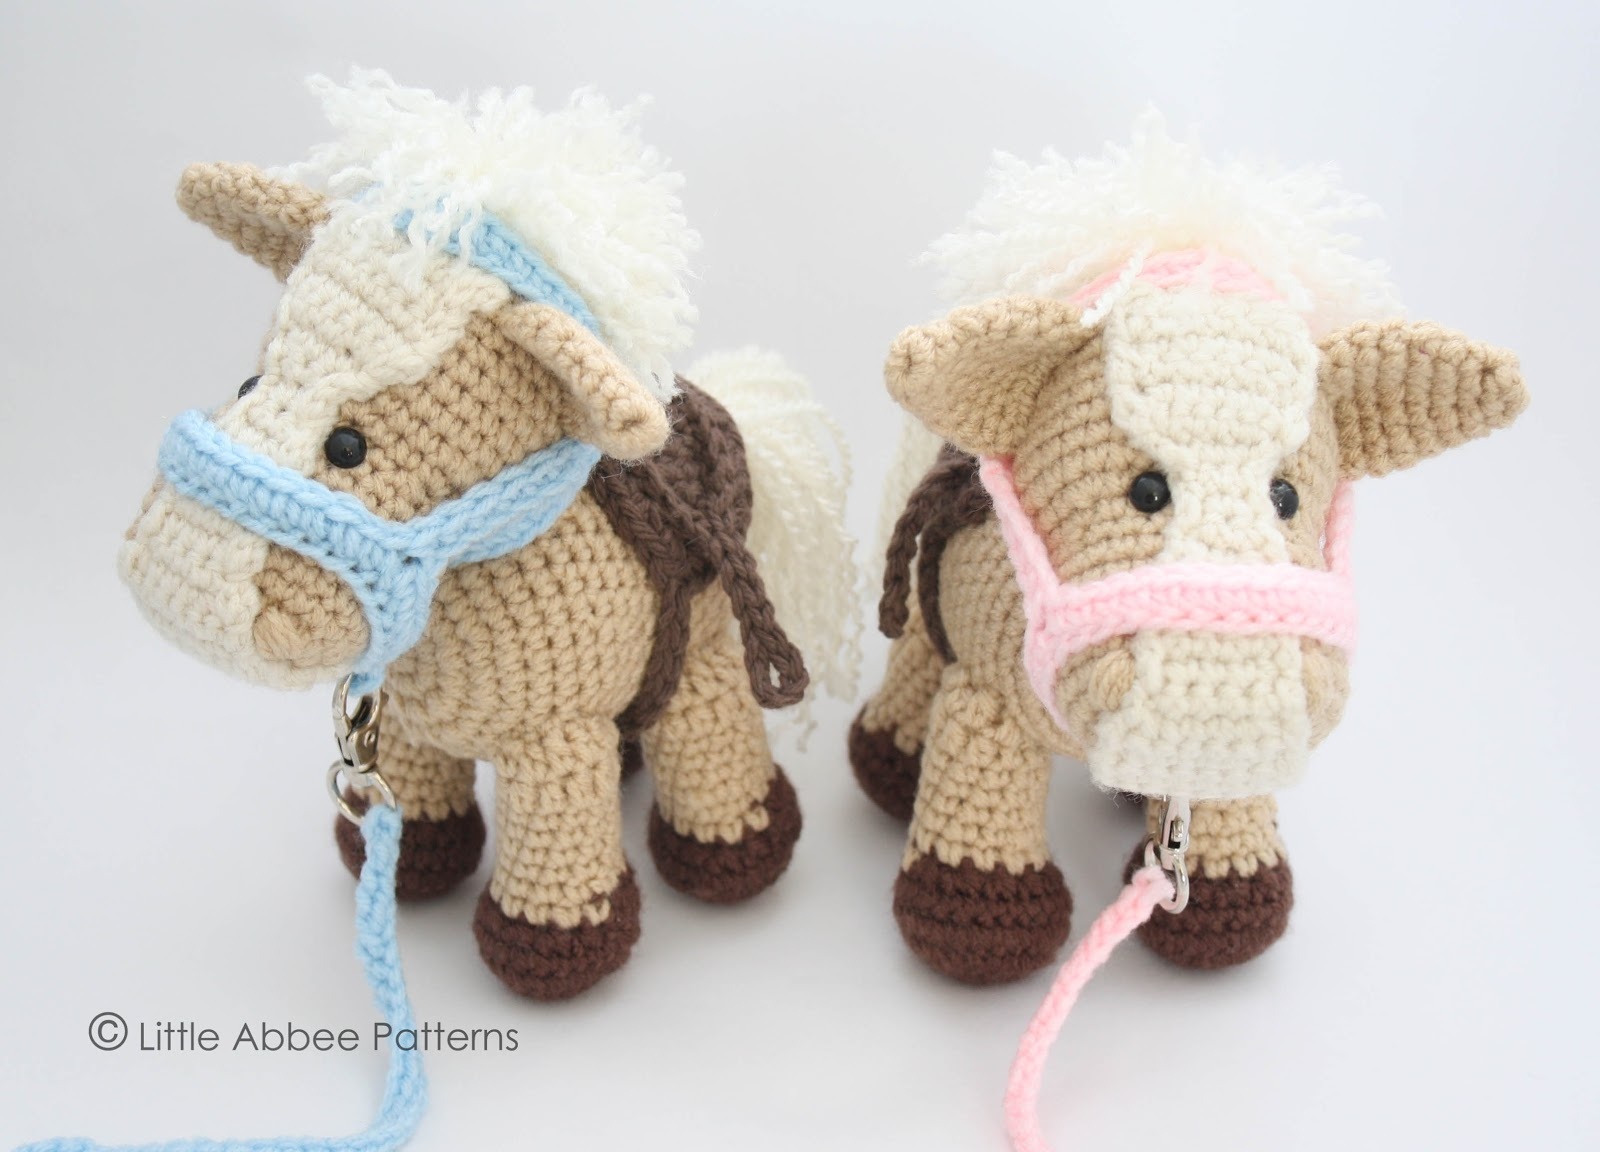 Little Abbee: His and Hers Amigurumi Horses